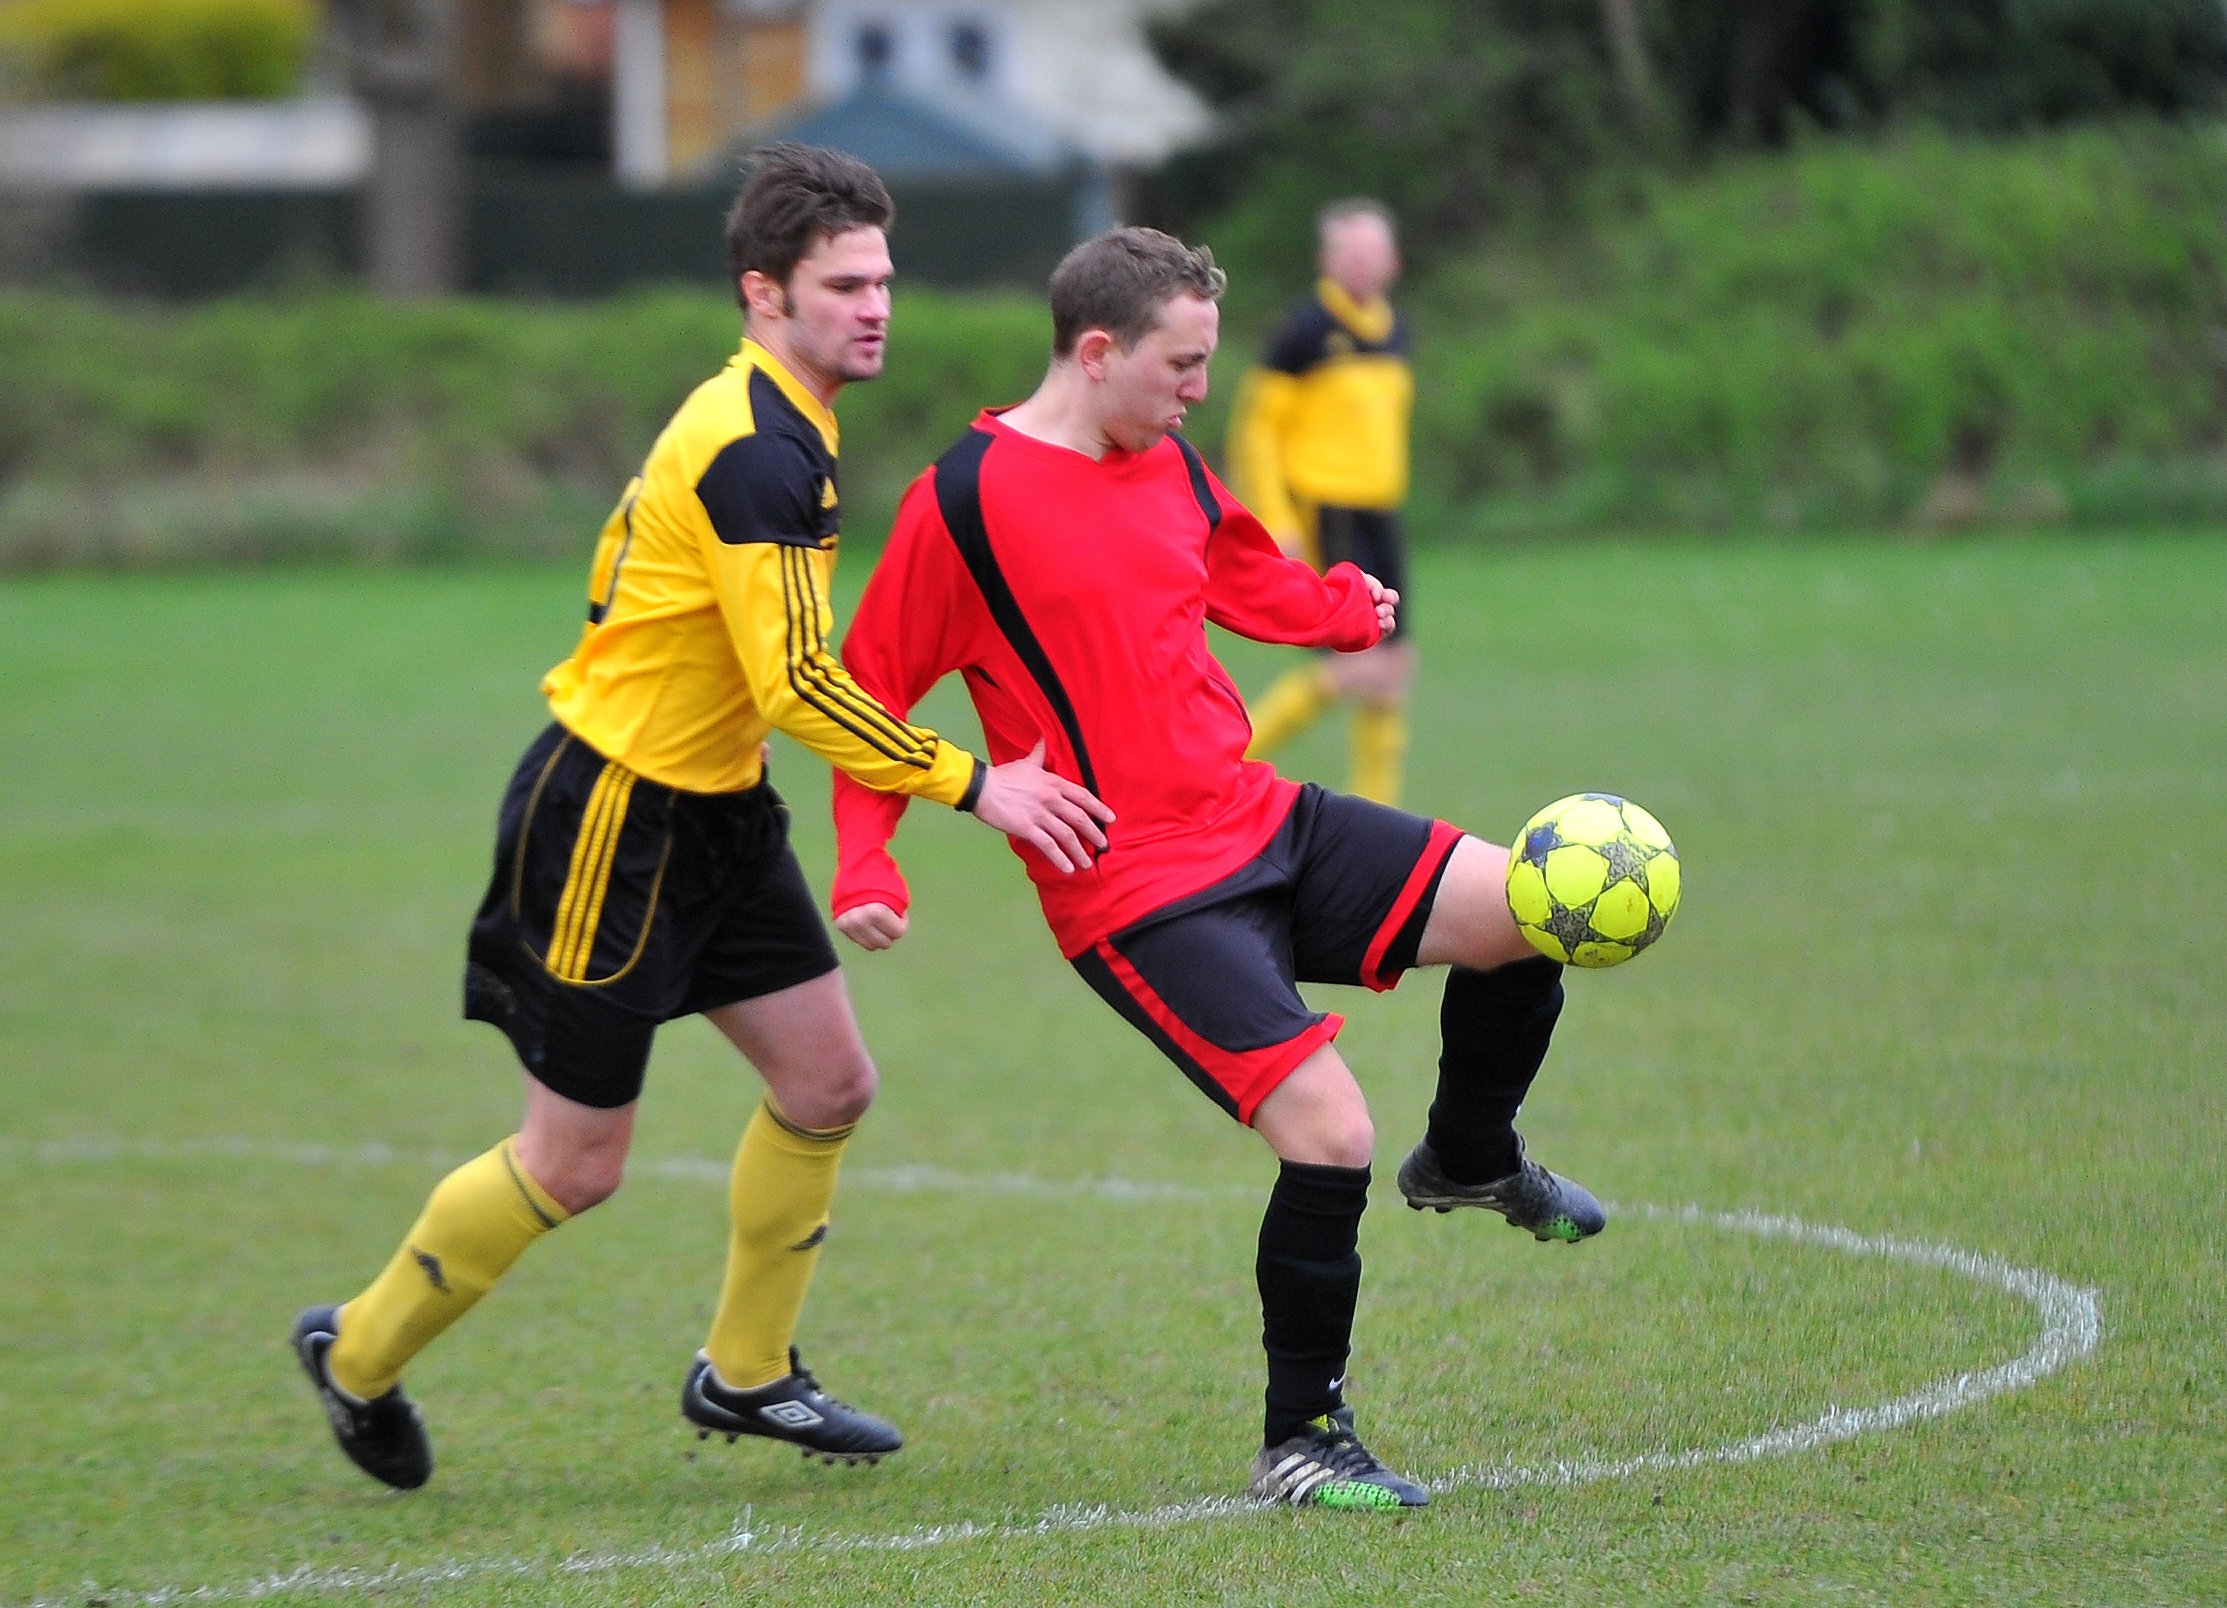 Action from a Lower Stratton match against Larry's Plaice earlier this season